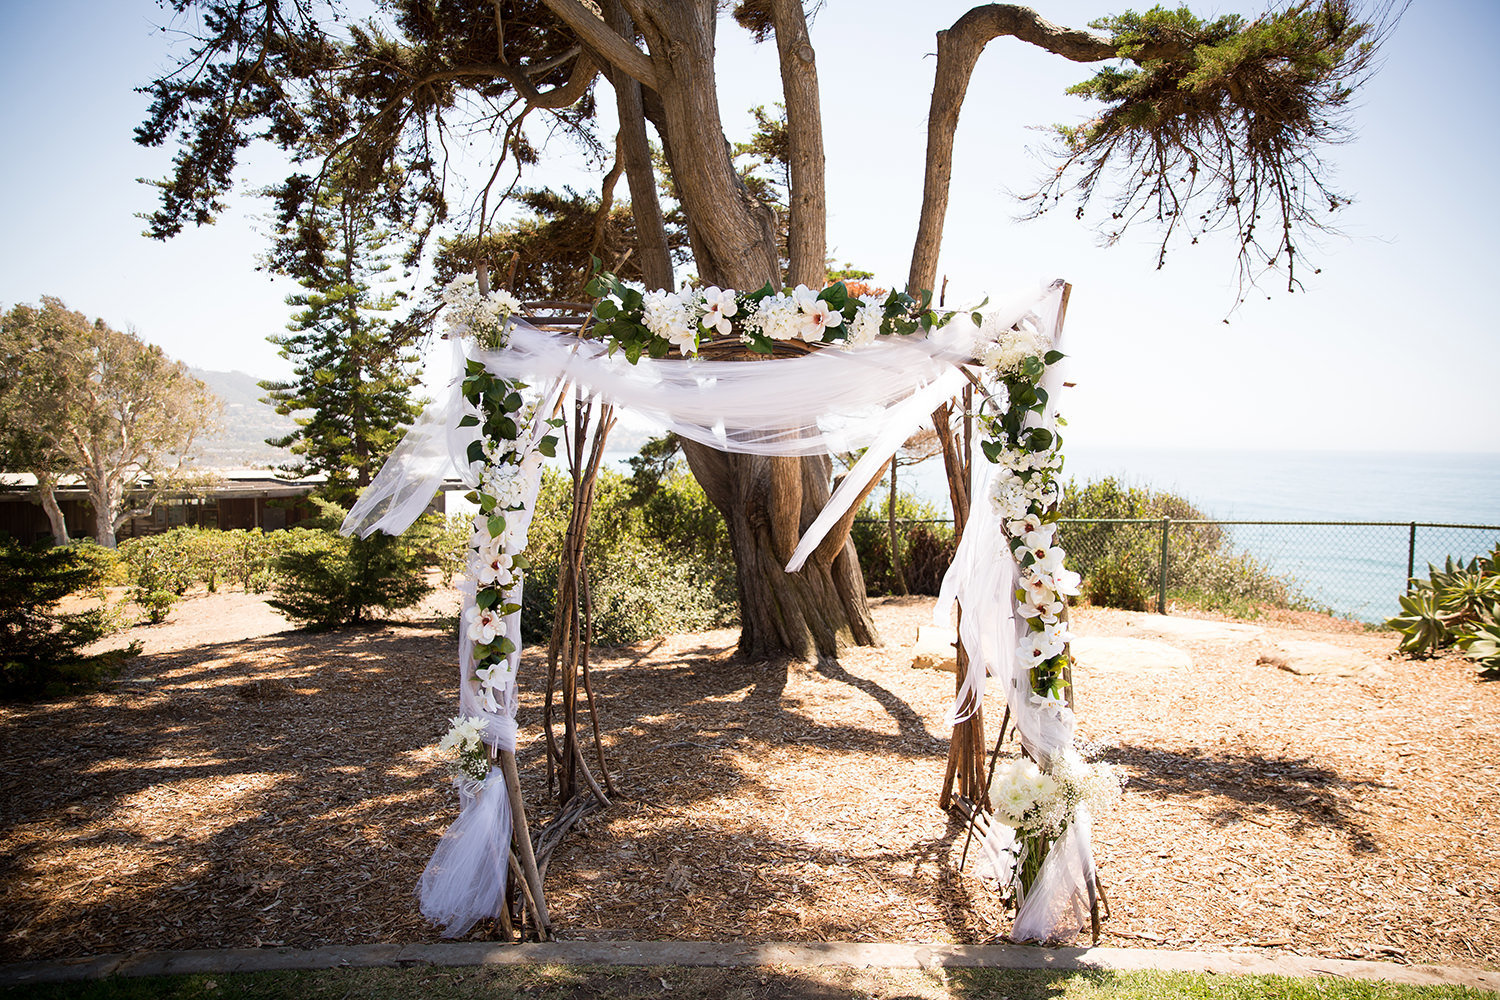 outside ceremony space